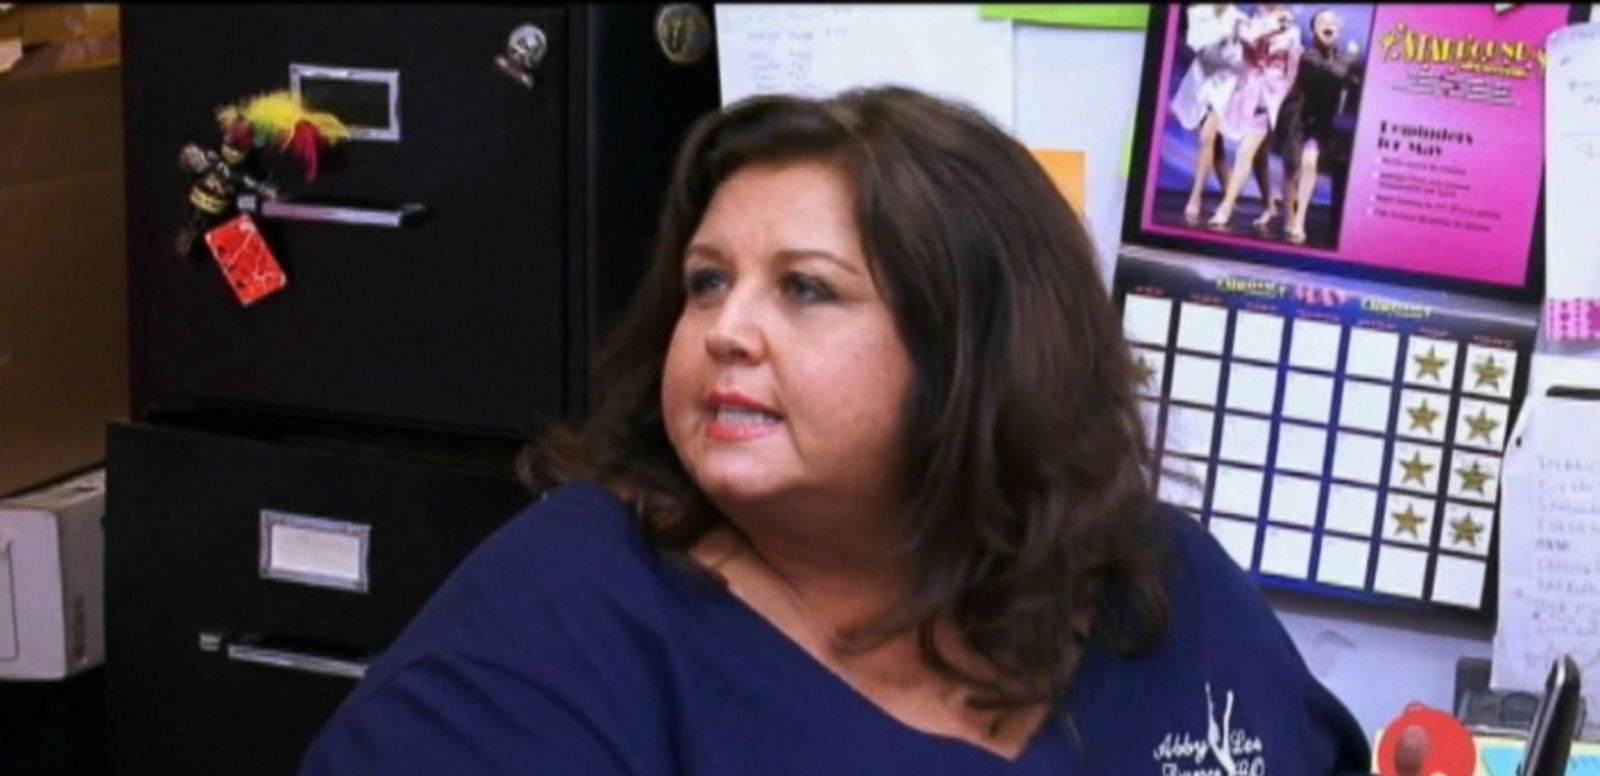 VIDEO: Abby Lee Miller pleaded guilty to one count of concealing assets of her bankruptcy estate and one count involving the currency reporting requirements related to international travel, according to a document obtained by ABC News.